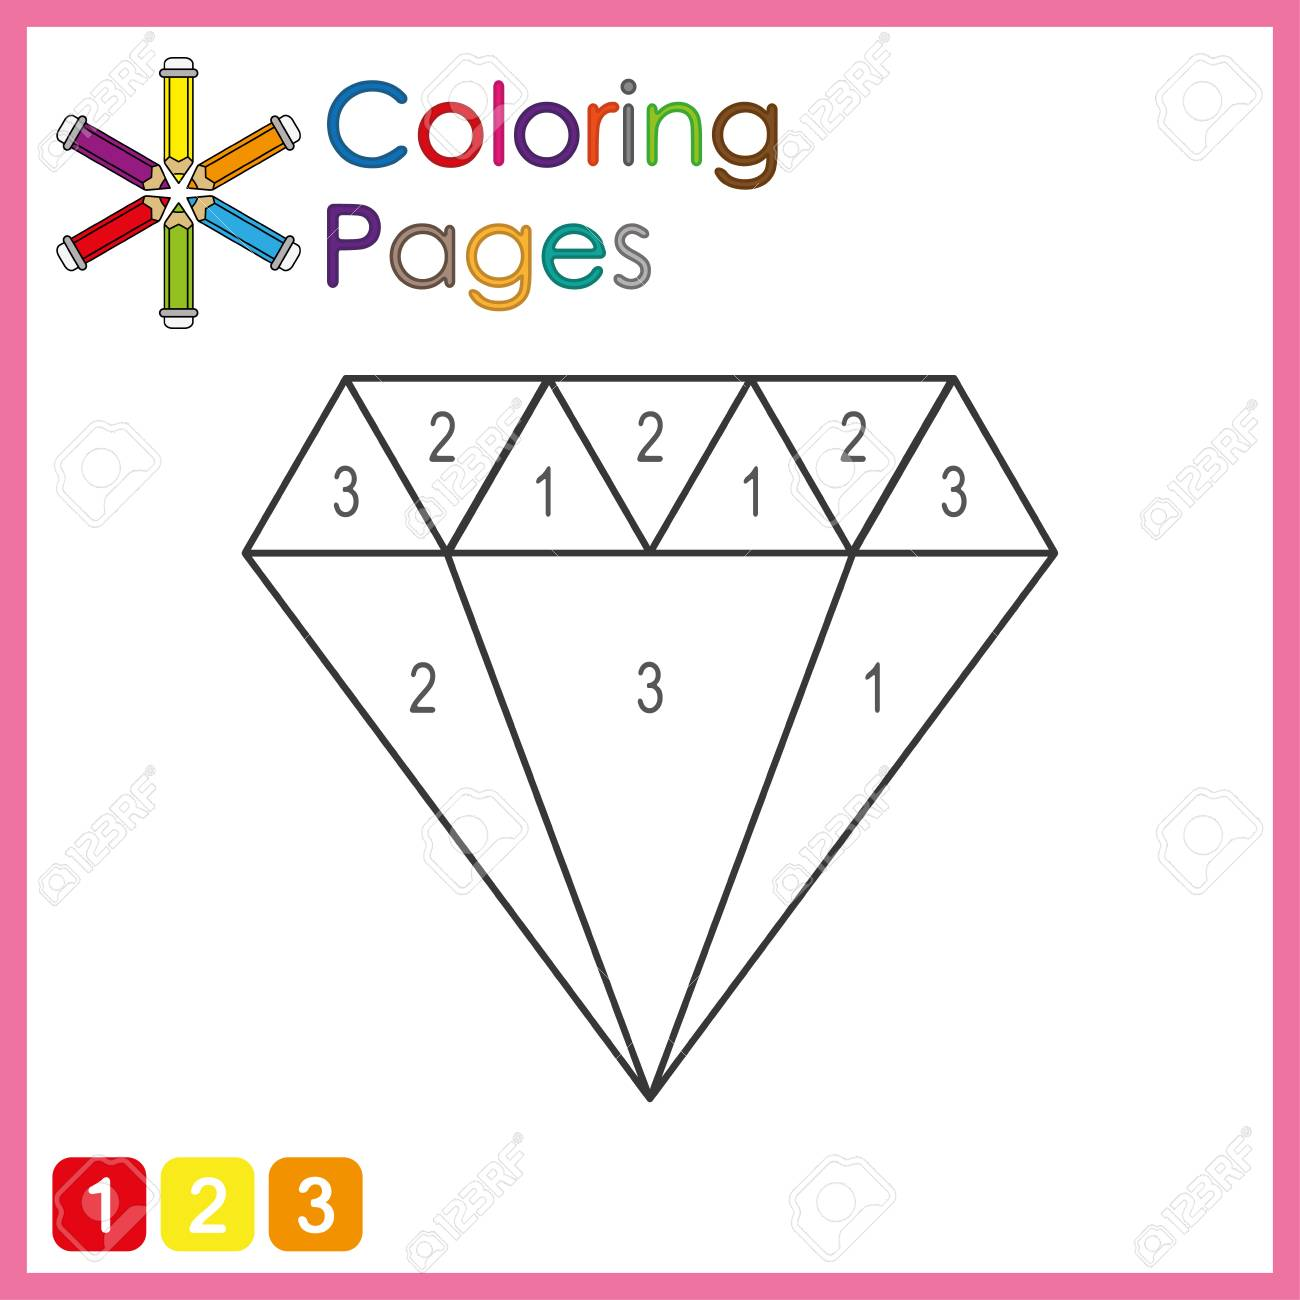 coloring page for kids, color the parts of the object according to numbers, color by numbers, activity pages - 122858951